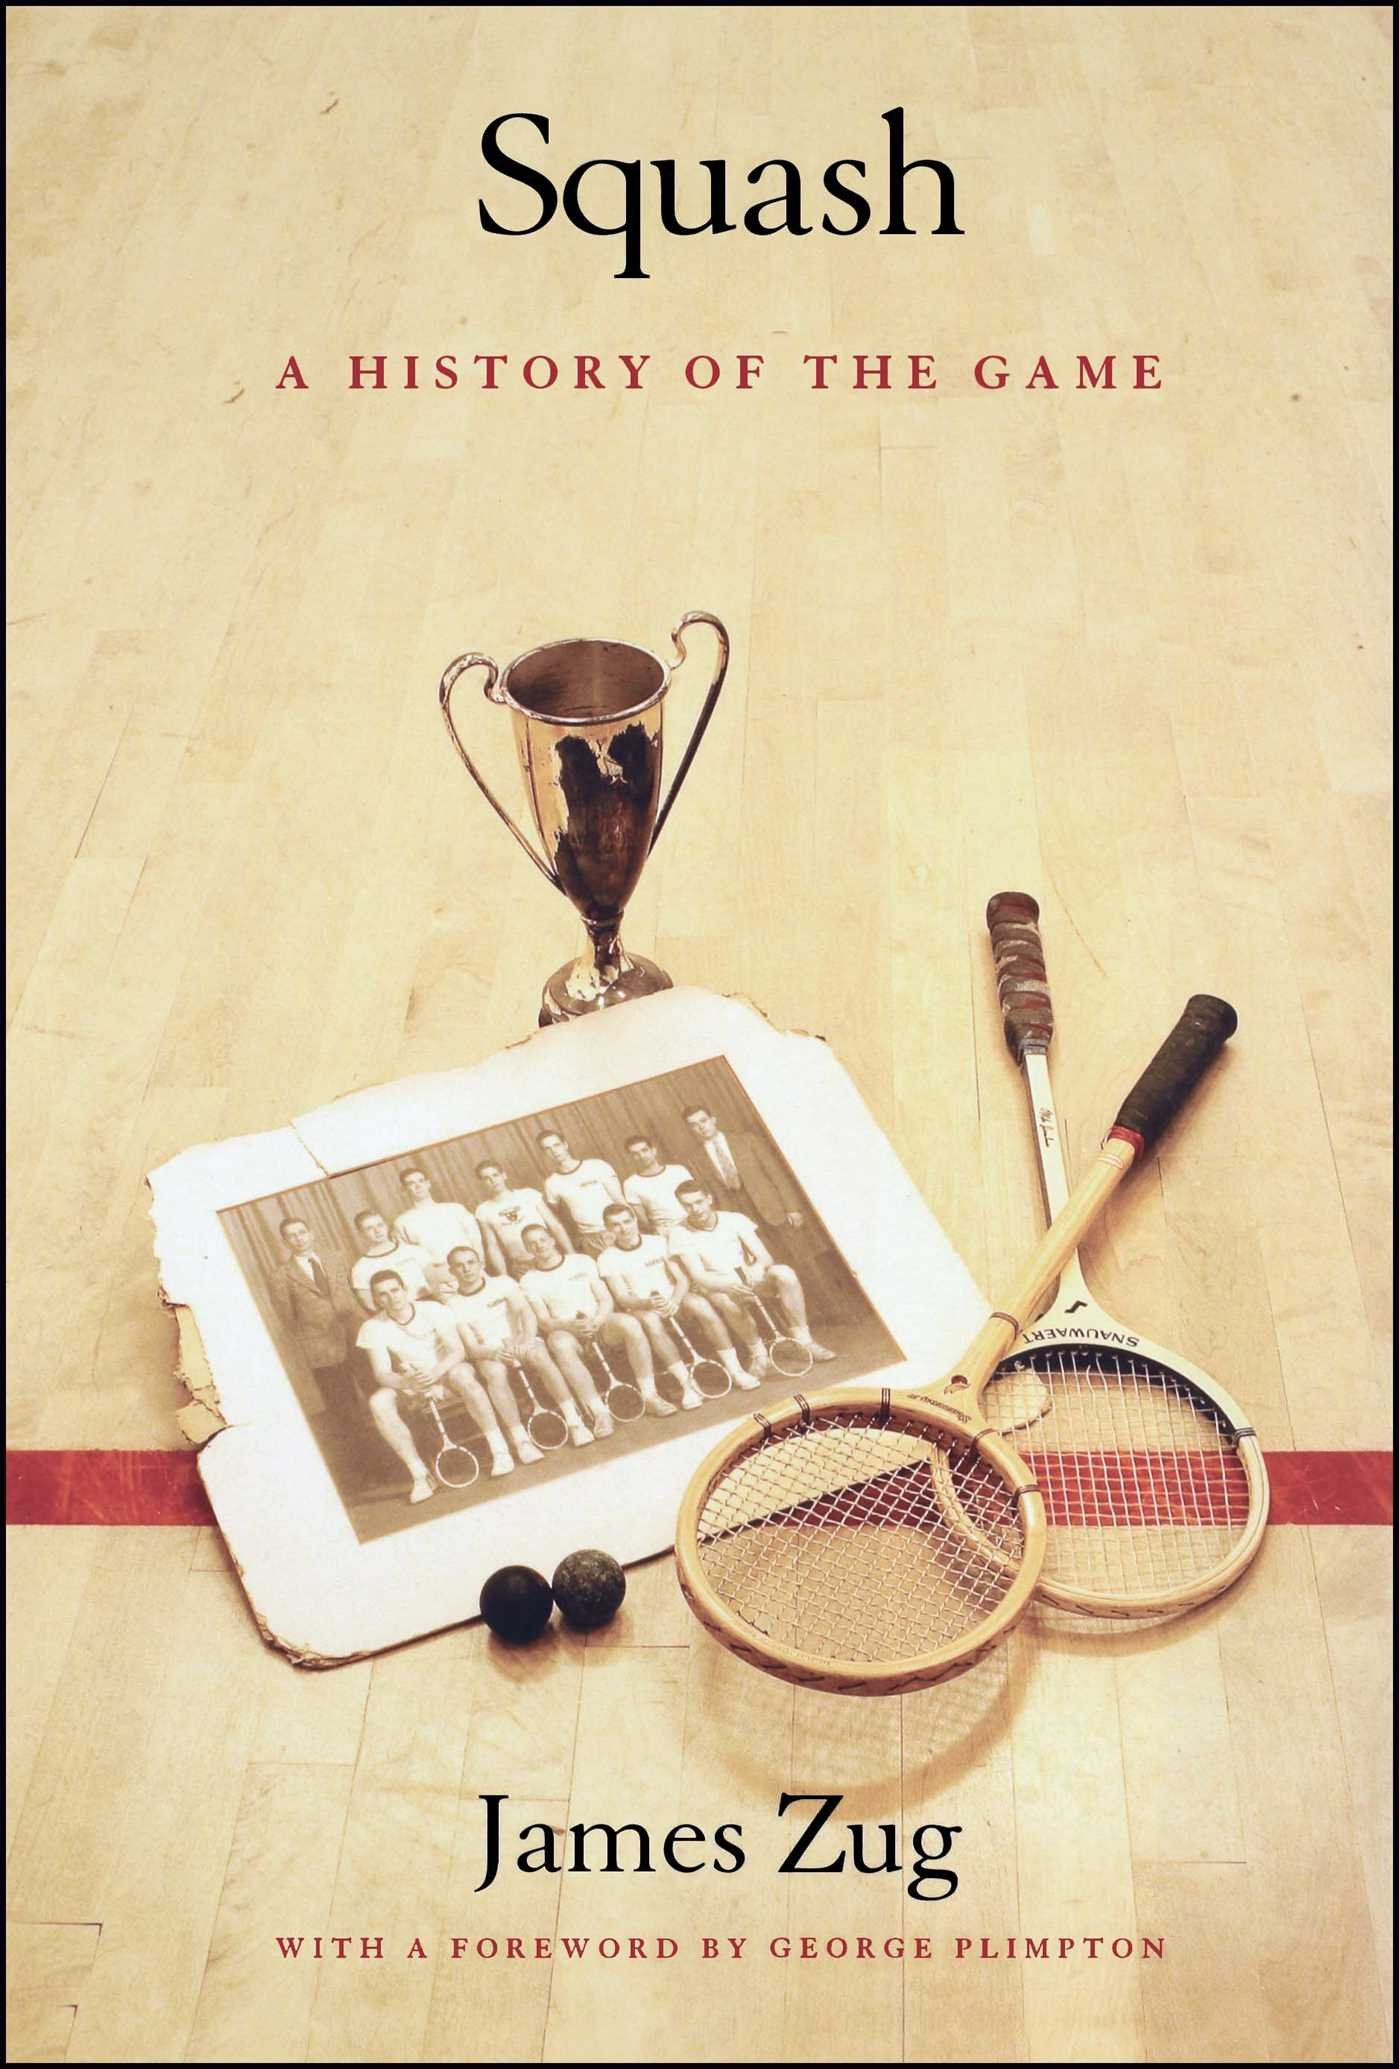 Squash A History Of The Game James Zug George Plimpton Electronics Learning Circuits Yuppie Gadgets 9780743229906 Books